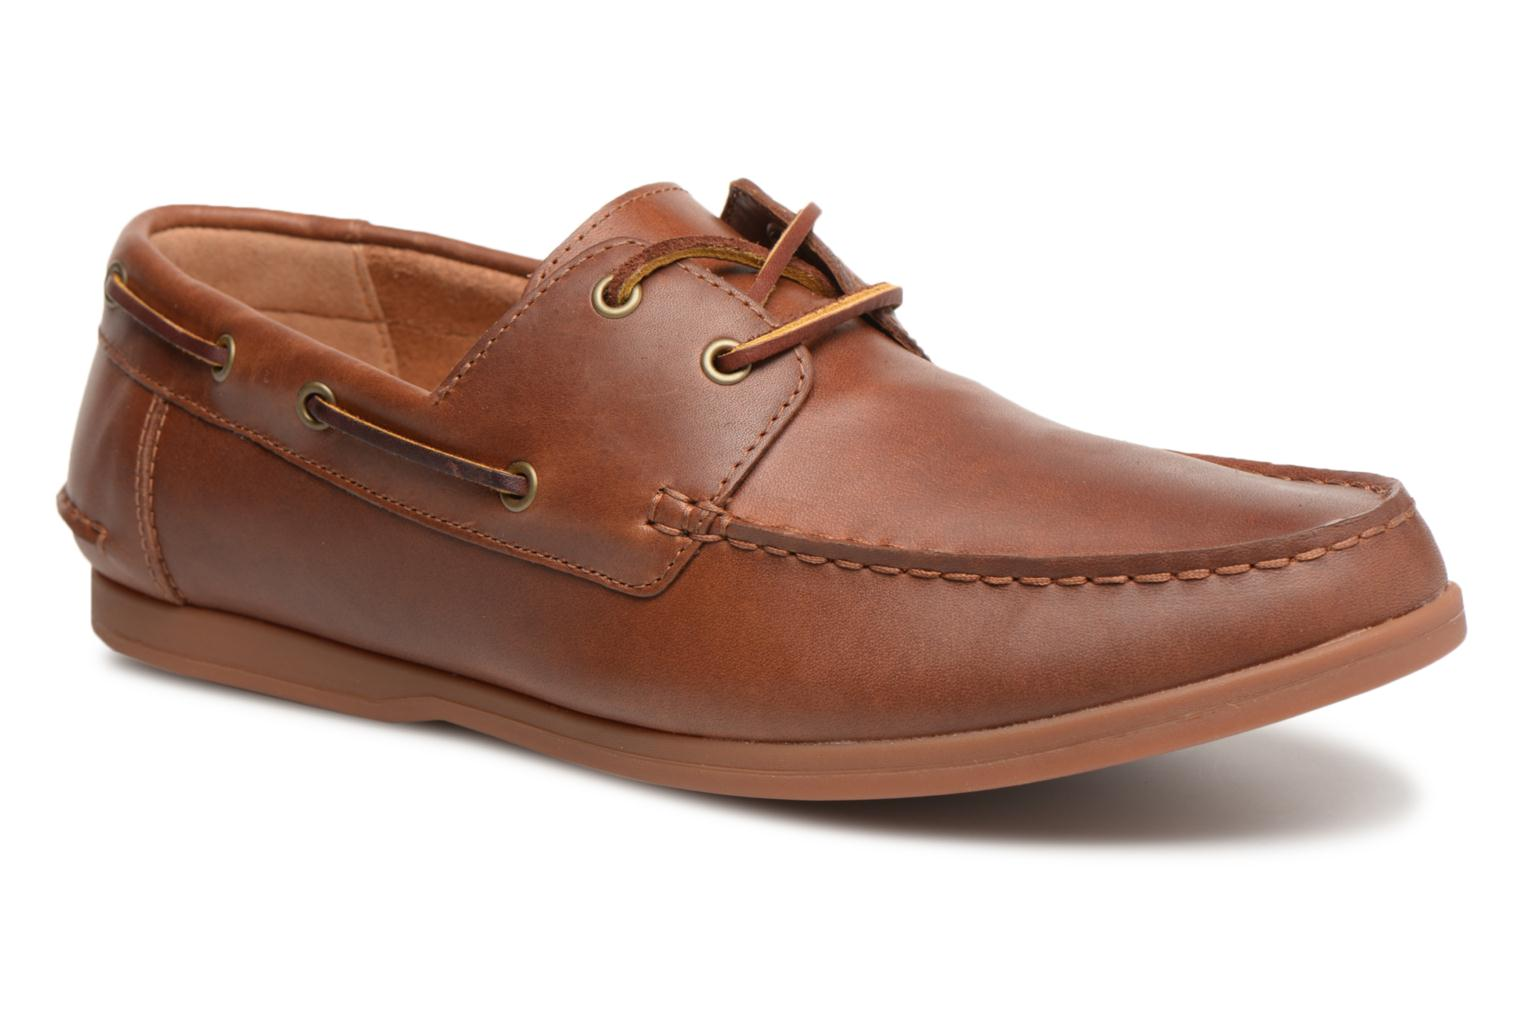 Marques Chaussure homme Clarks homme Morven Sail Tan Leather GH8HUA1Z -  sk-group.fr 048174aacbb3